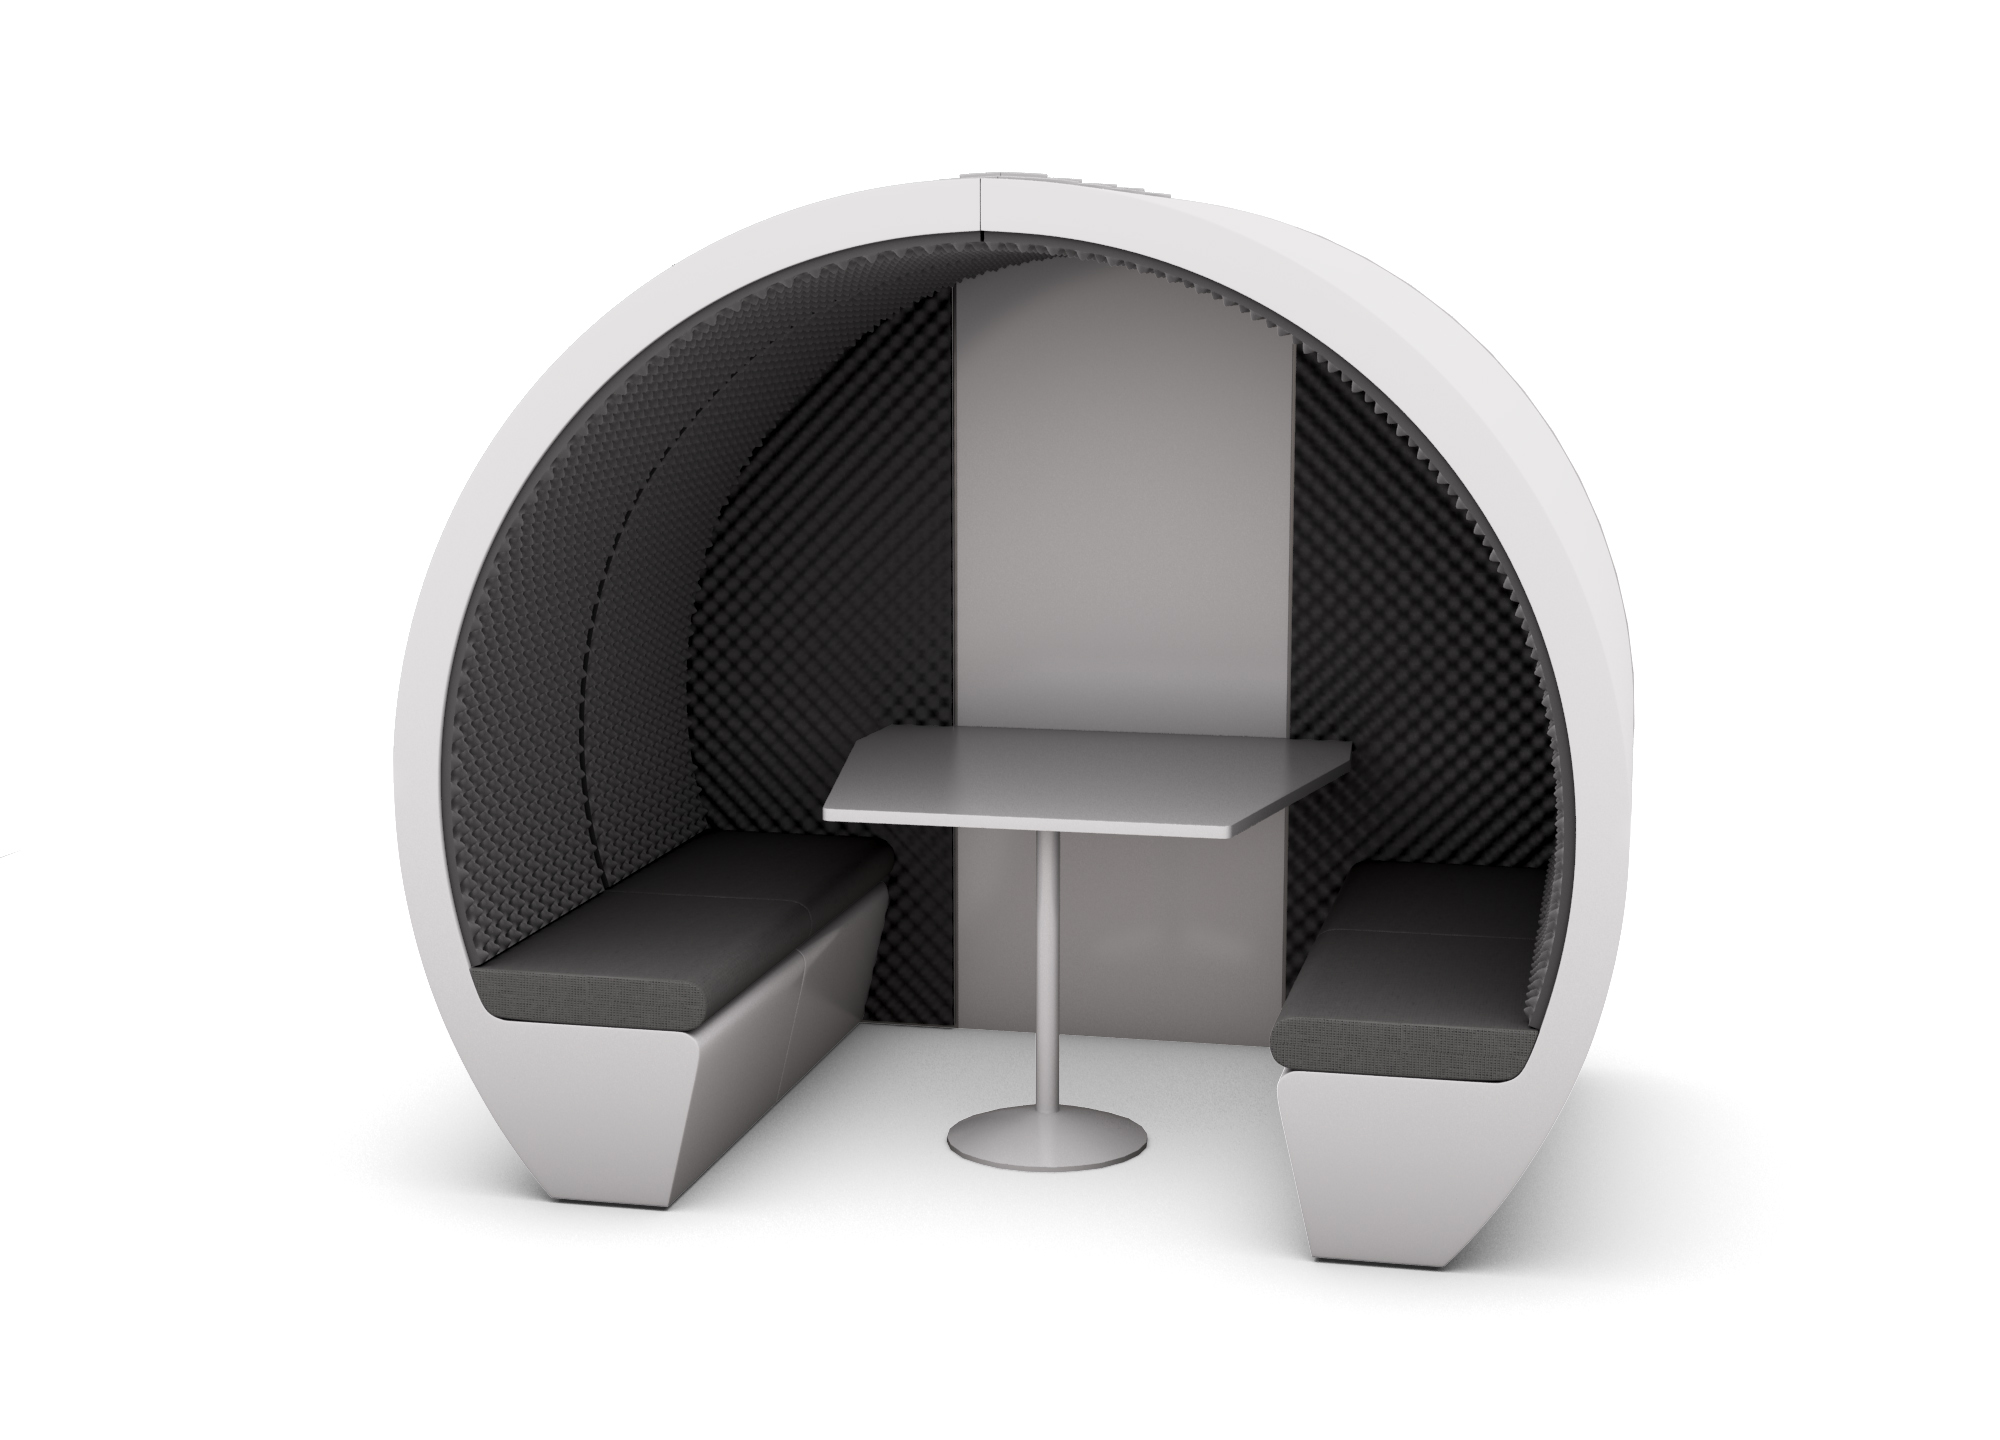 The Meeting Pod Office Pod